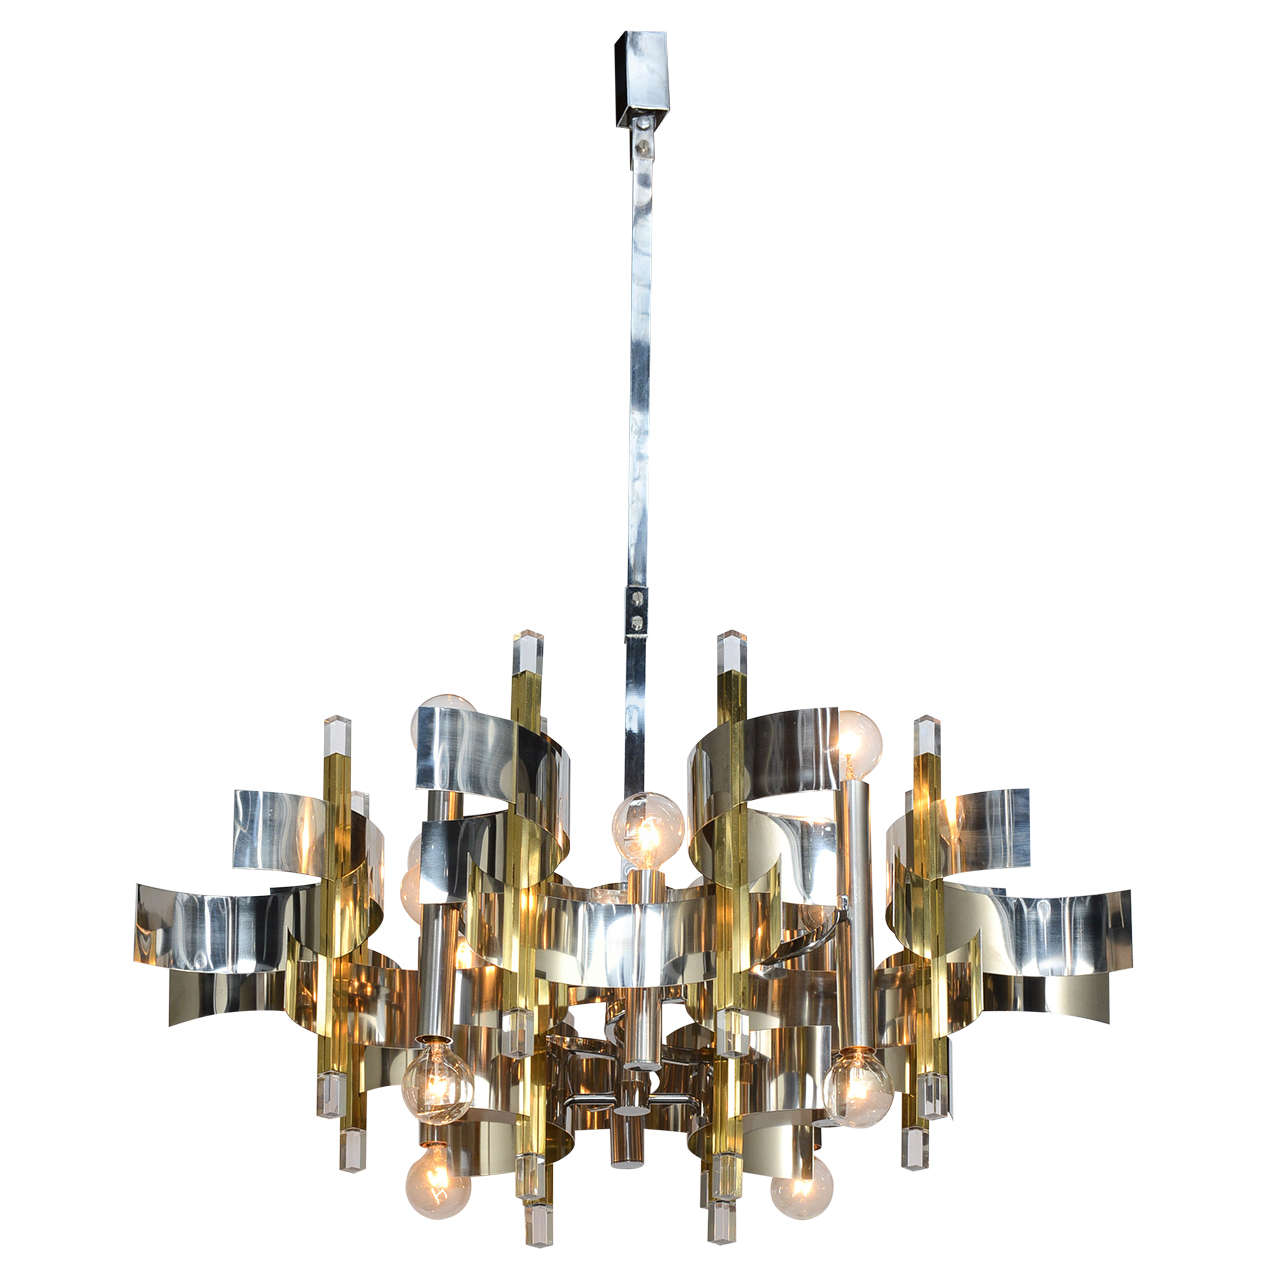 lucite id f century sale x for top furniture spray lights waterfall at mid with pendant chandeliers lighting chandelier